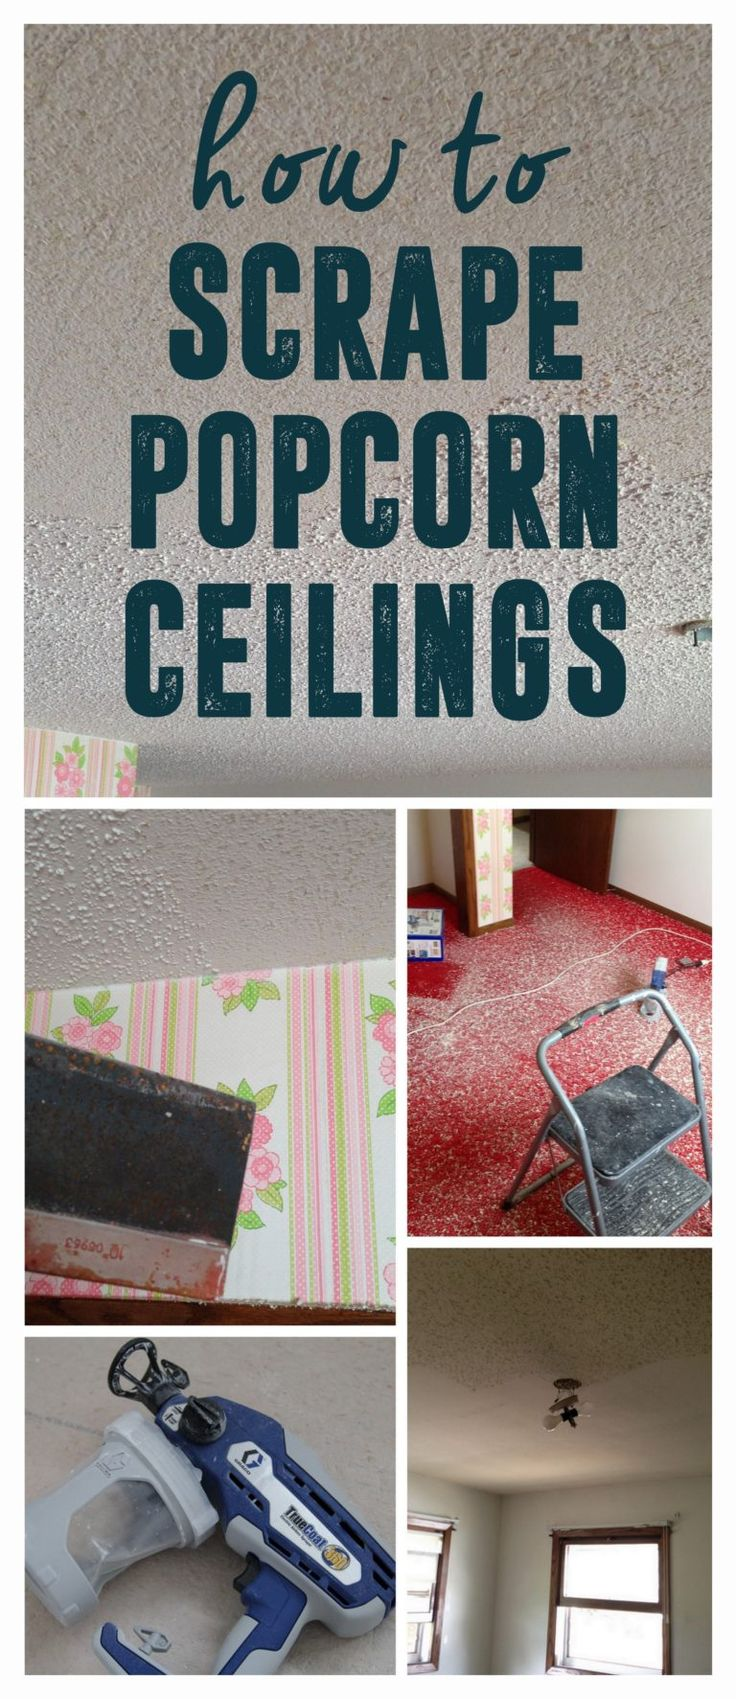 17 Best ideas about Remove Popcorn Ceiling on Pinterest : Removing popcorn ceiling, Ceiling ...